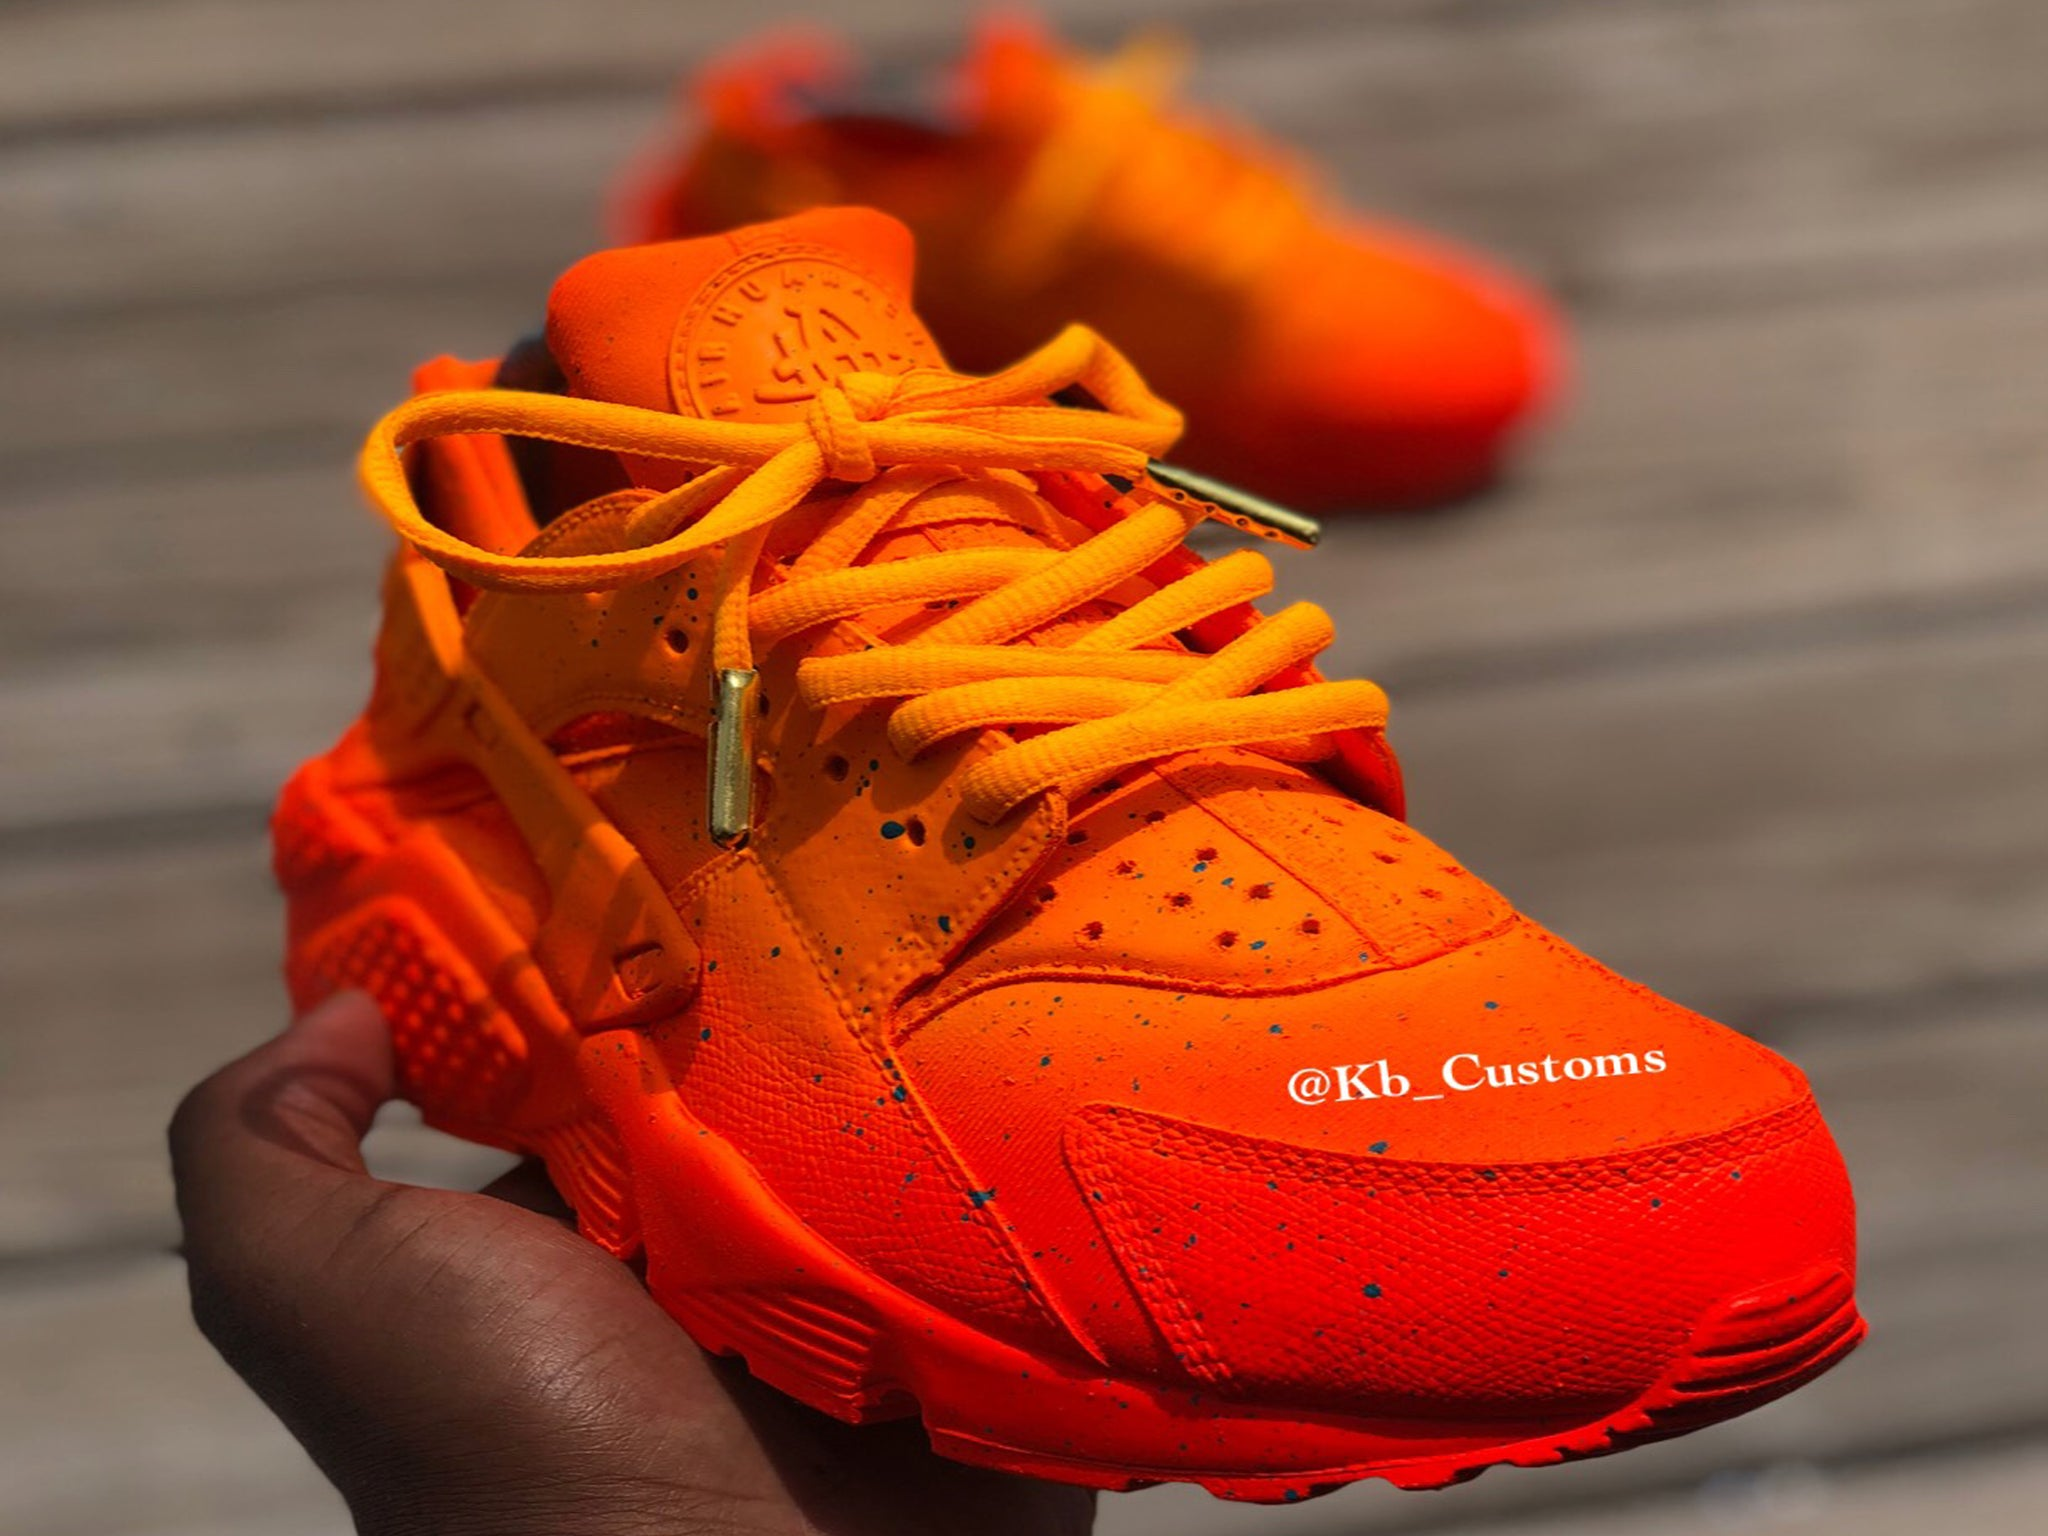 f8fb9c6153678 Custom Sunset Orange Nike Huaraches2 1024x1024 2x.jpg v 1530847803